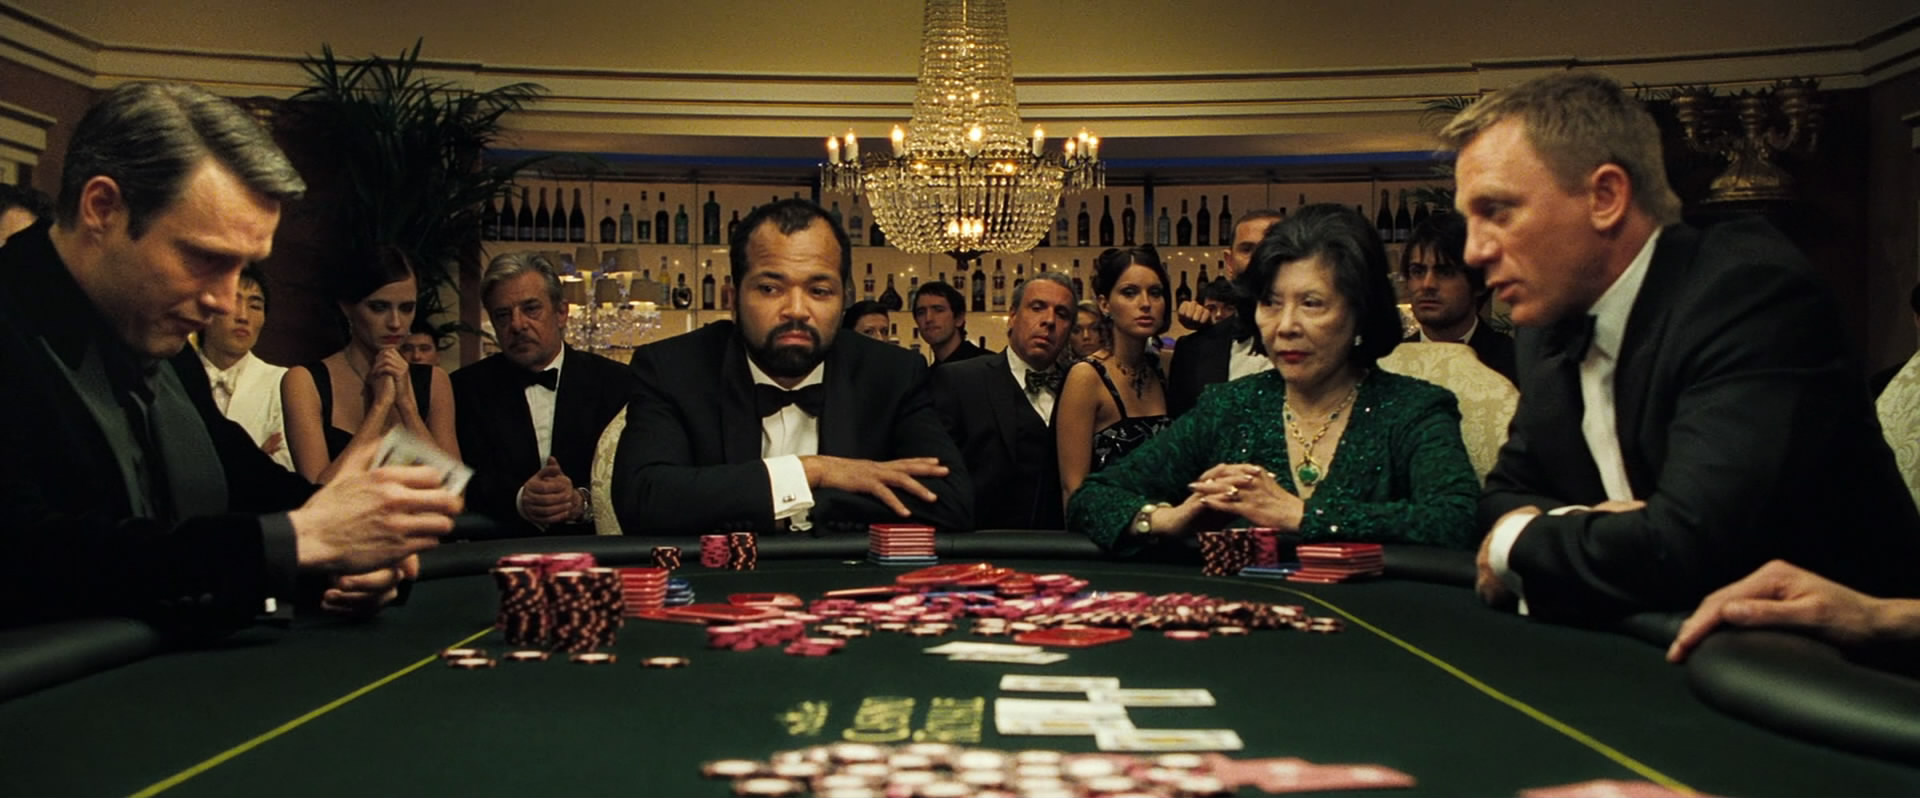 A scene from the movie Casino Royale highlighting the poker game that was pivotal to the plot.